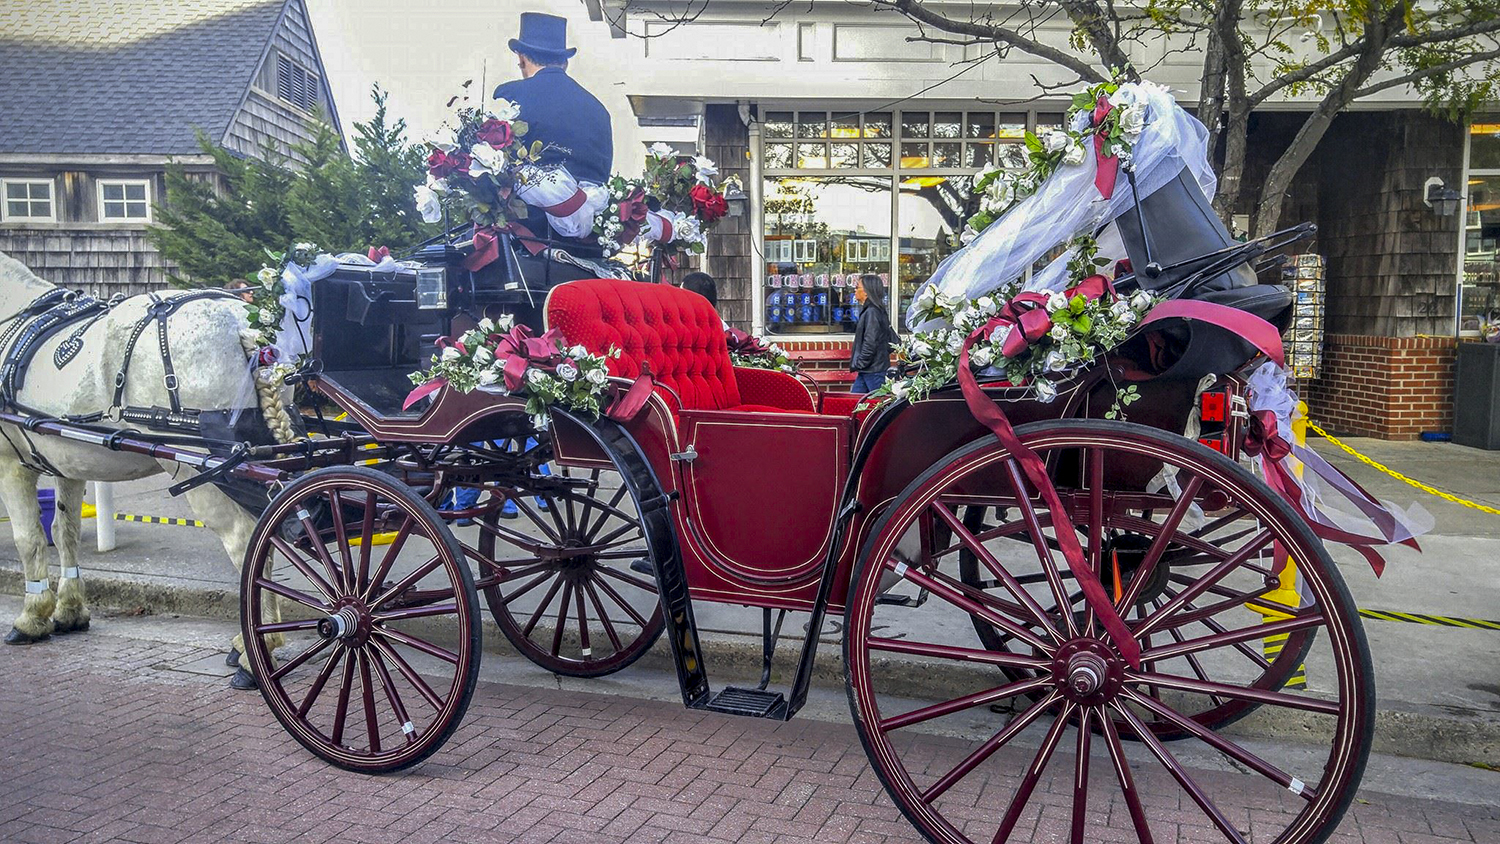 Cape May Carriage Company – Cape May Beach Weddings | CapeMay.com